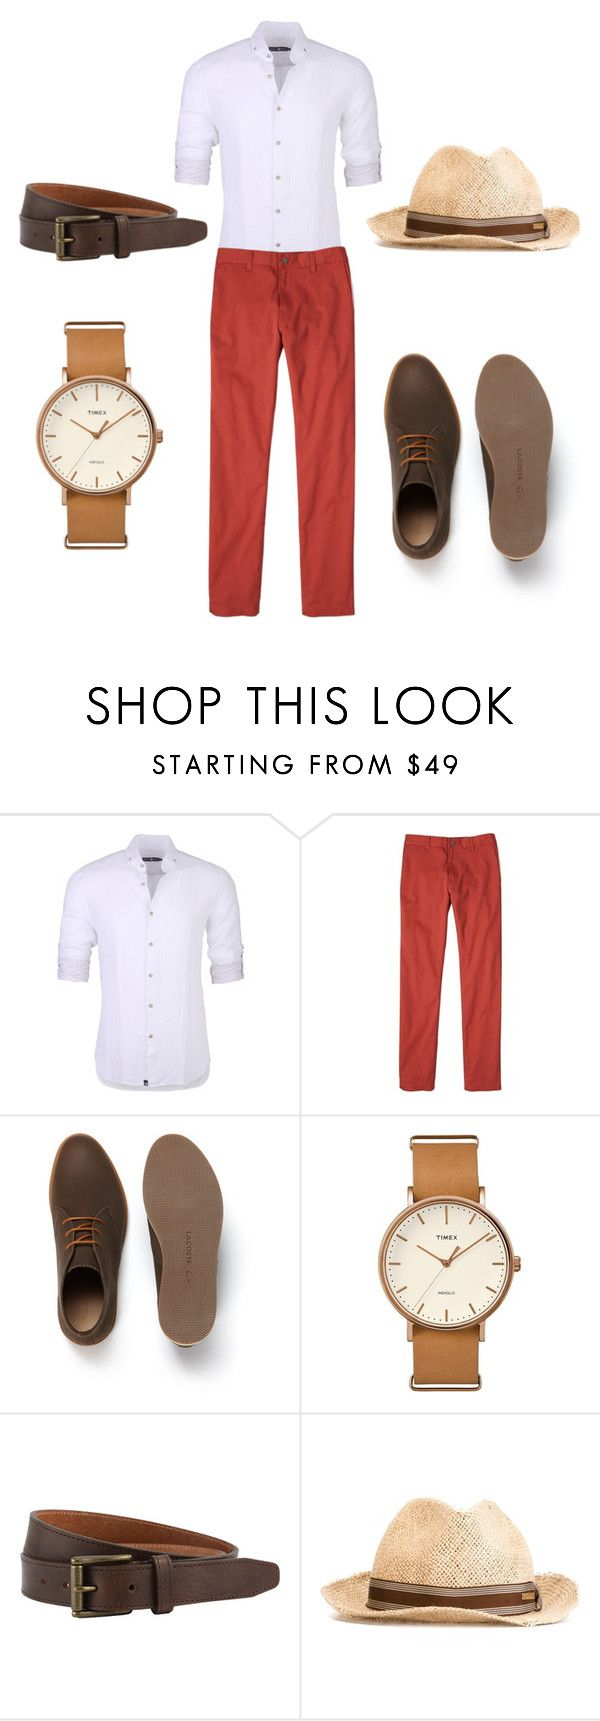 """""""Summer Dapper-ish"""" by diamond-winstead ❤ liked on Polyvore featuring Stone Rose, prAna, Lacoste, Timex, The British Belt Company, men's fashion and menswear"""